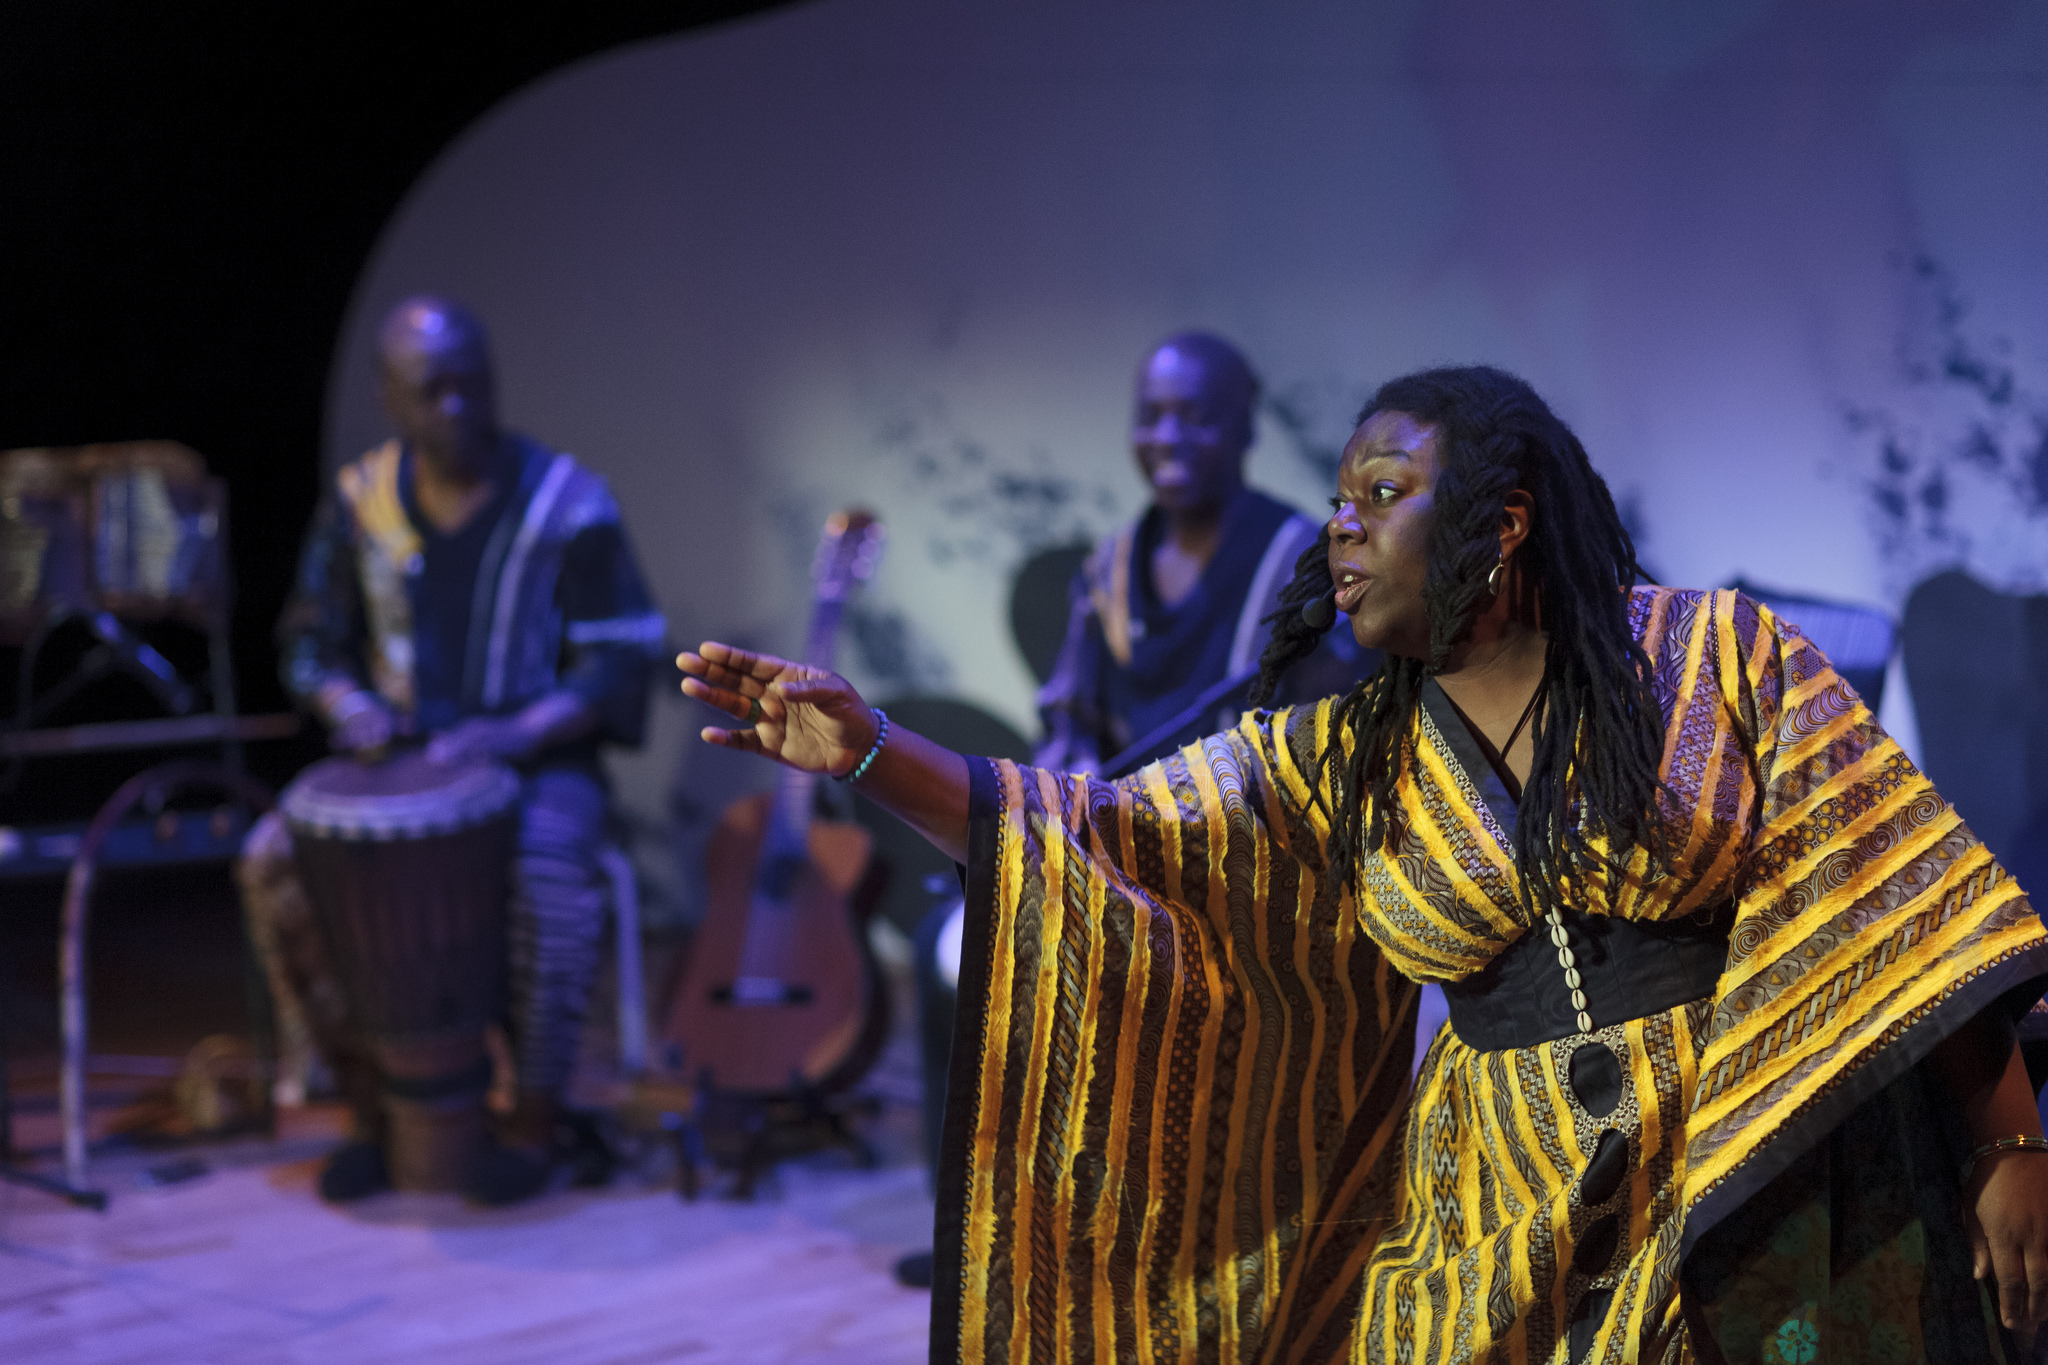 A woman in African dress reaches out across a stage in front of musicians.